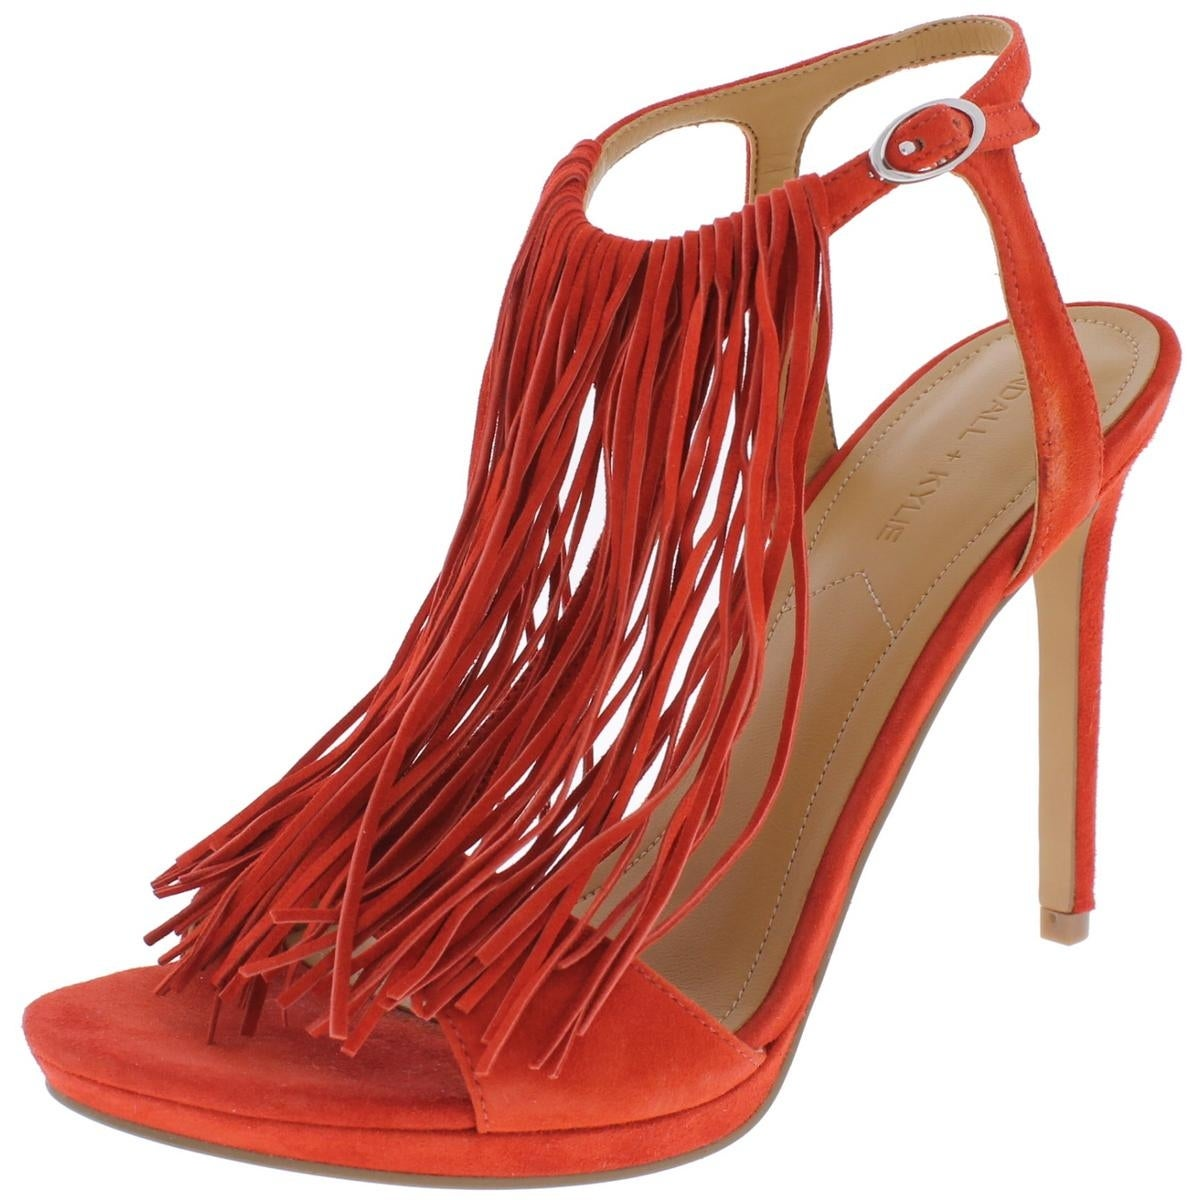 70a0cbc5c6e Kendall + Kylie Womens Aries Heels Fringe Open Toe